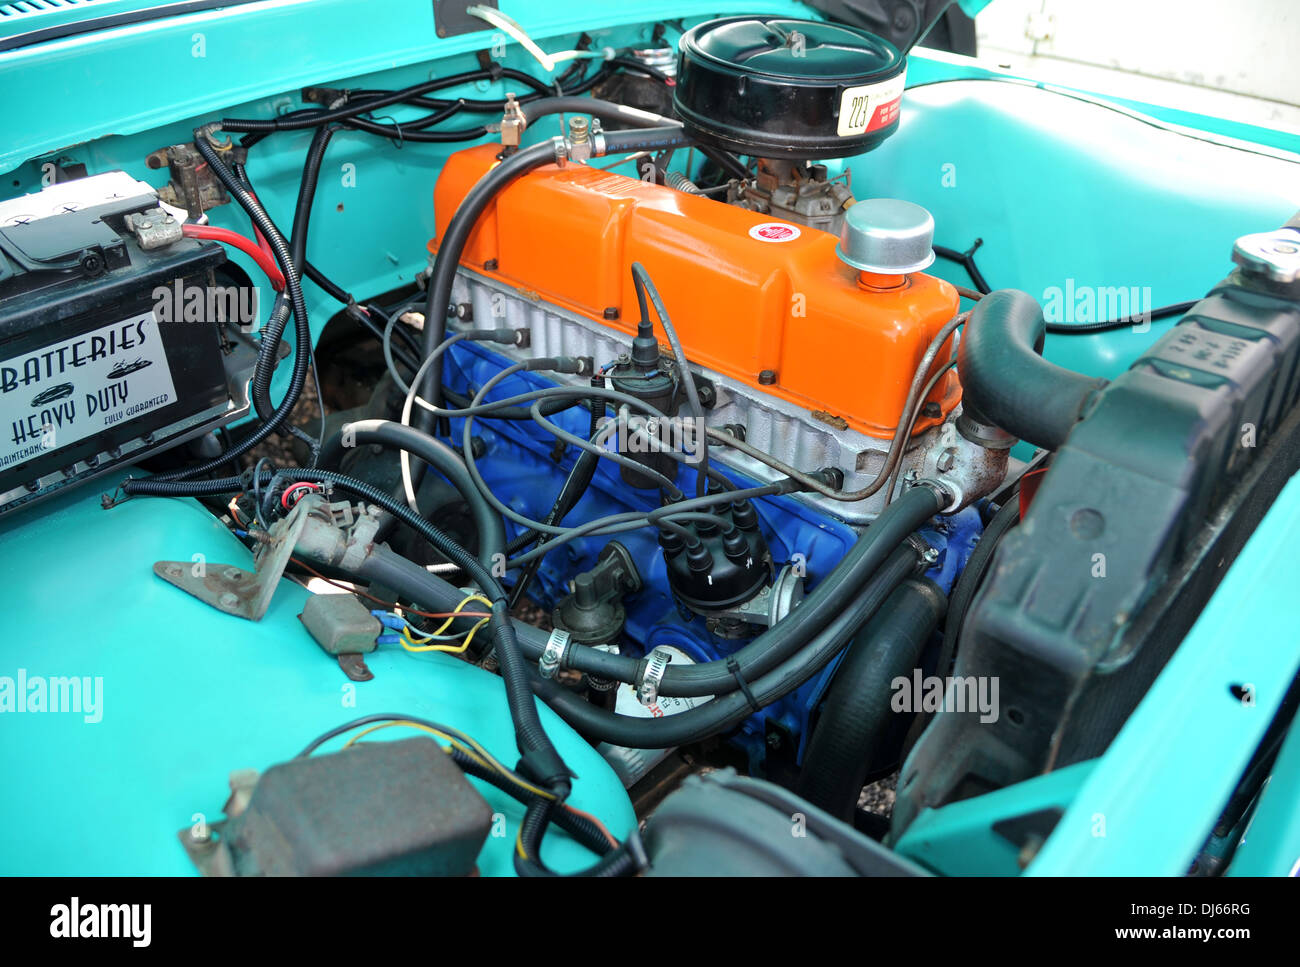 1964 Ford F100 Pickup Blue Stock Photos Images Alamy Classic American Pick Up Truck Image